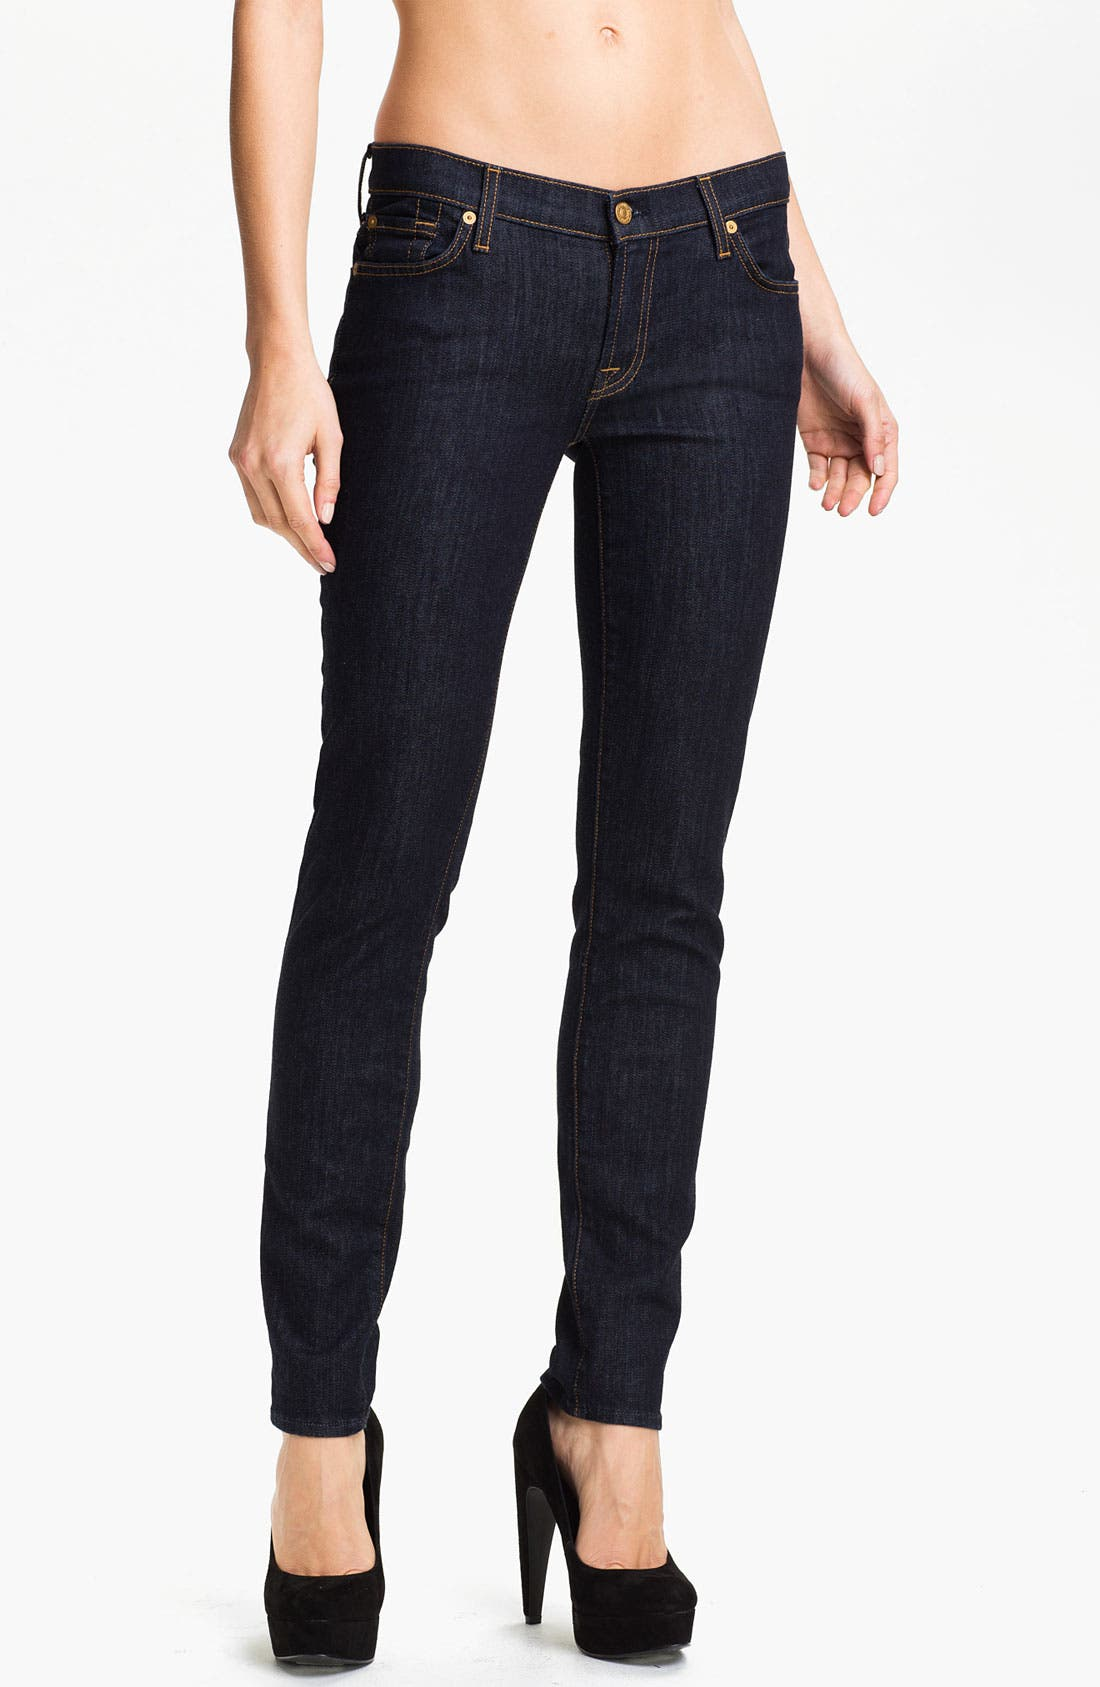 Alternate Image 1 Selected - 7 For All Mankind® 'The Slim Cigarette' Stretch Jeans (Rinse)